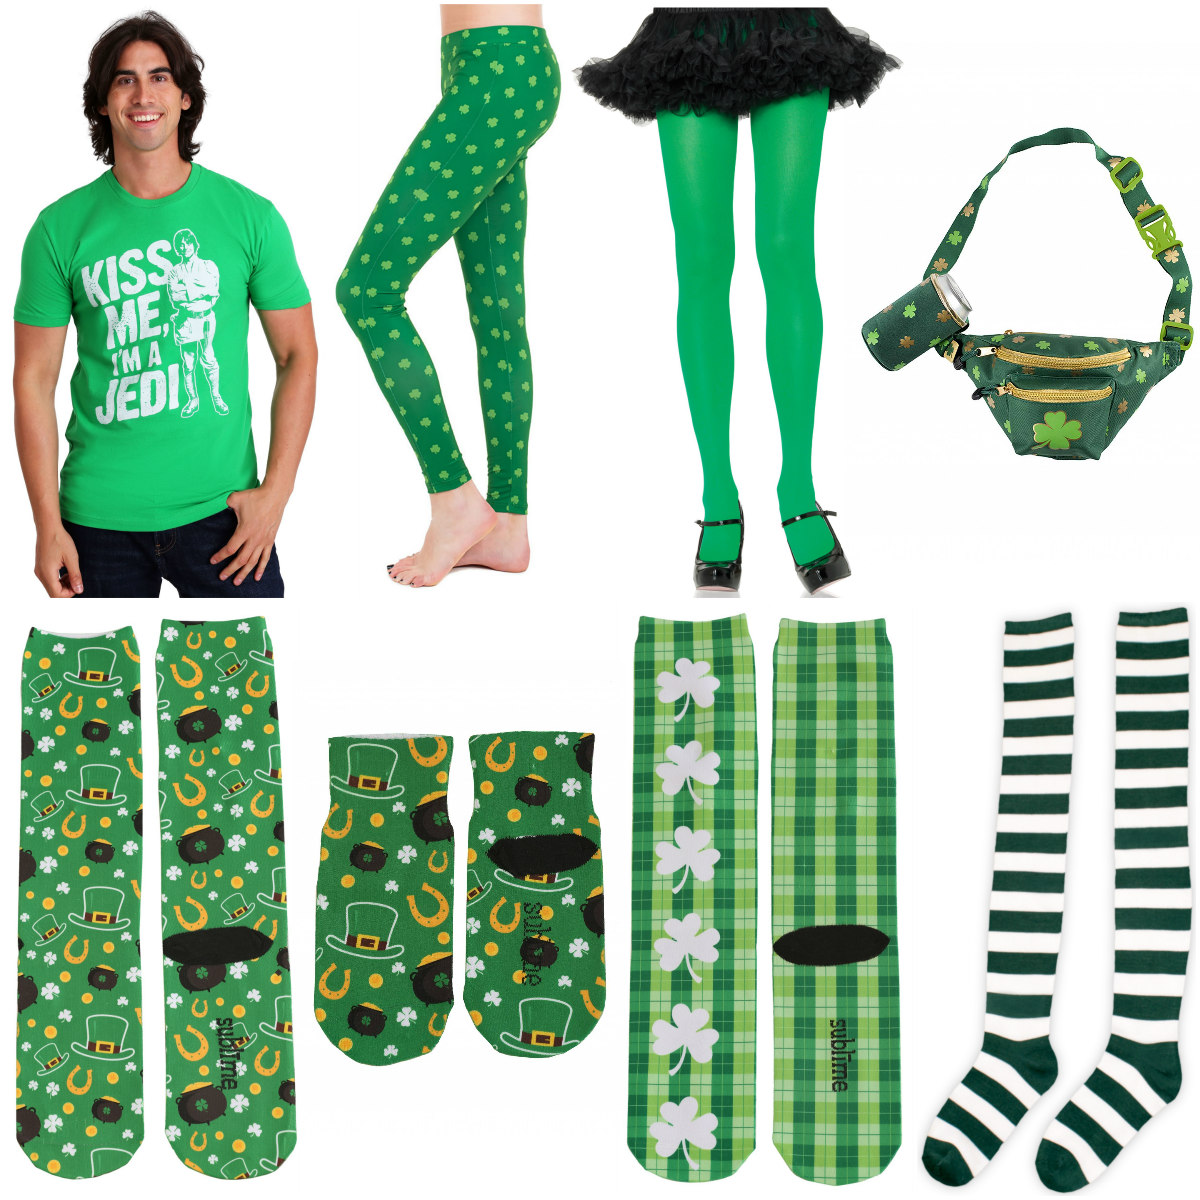 St. Patrick's Day Apparel for Your Race